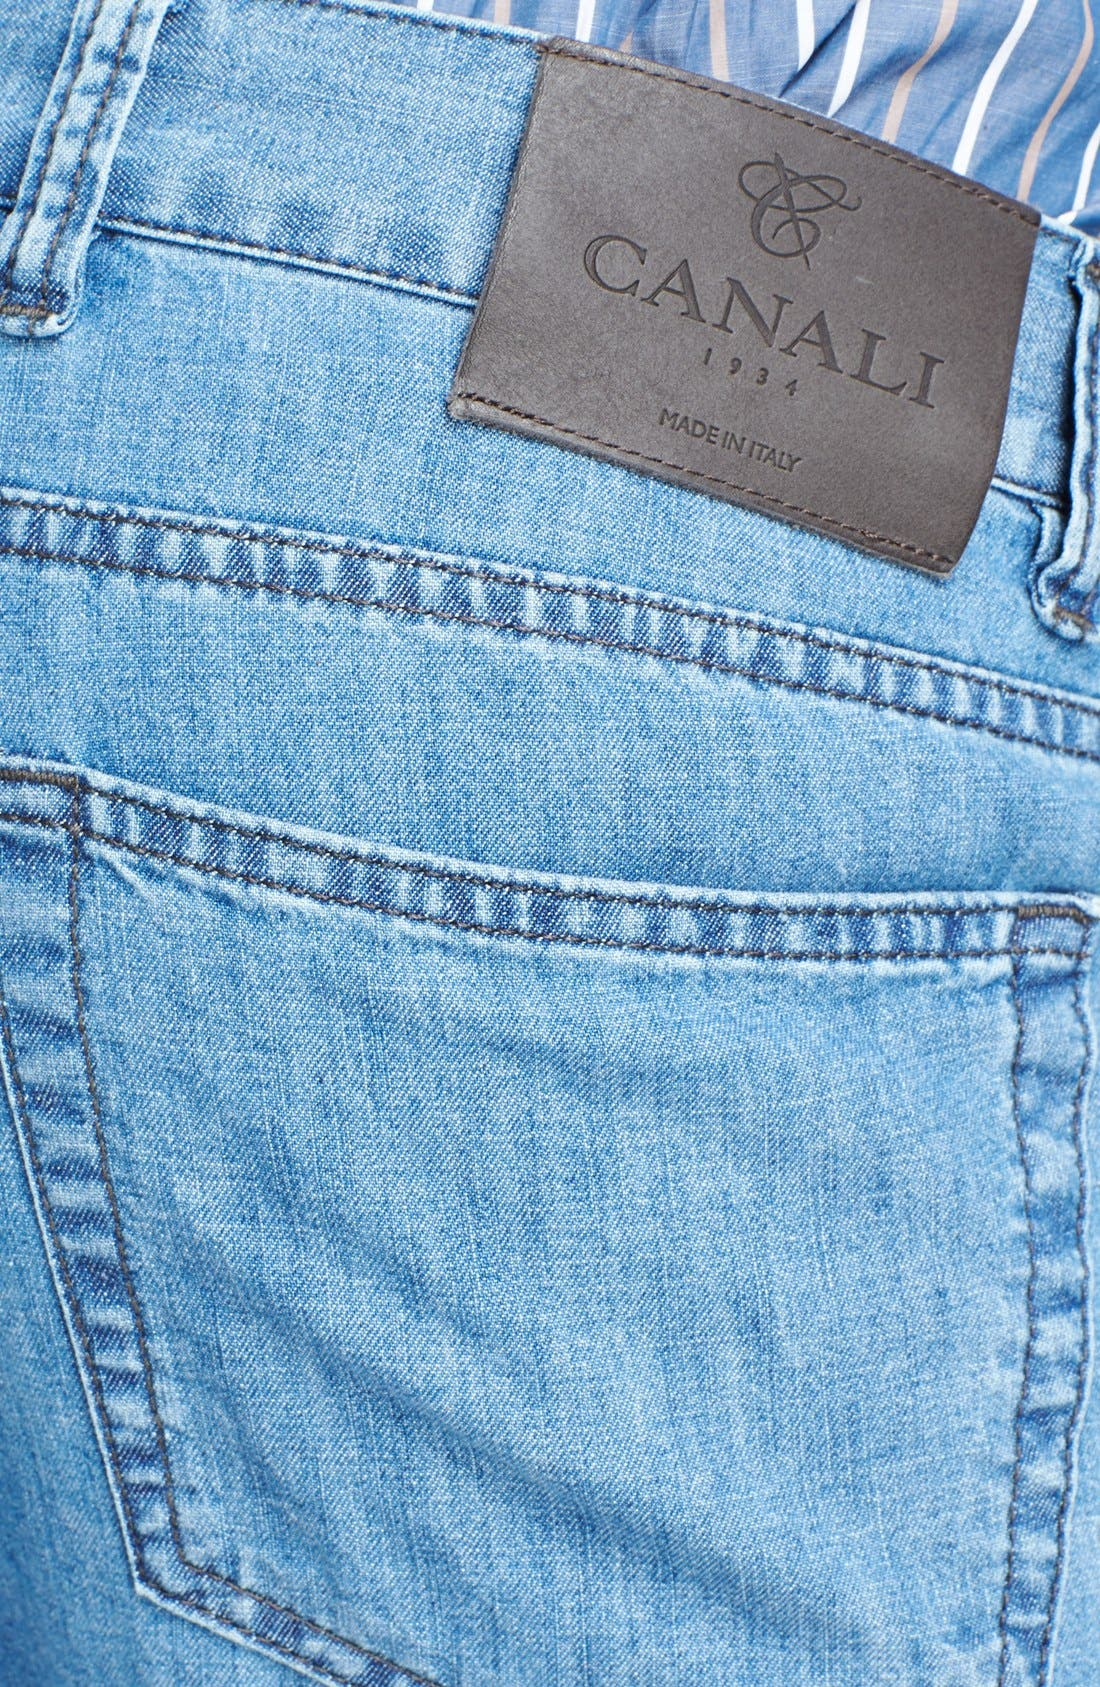 Alternate Image 3  - Canali Regular Fit Italian Jeans (Blue)